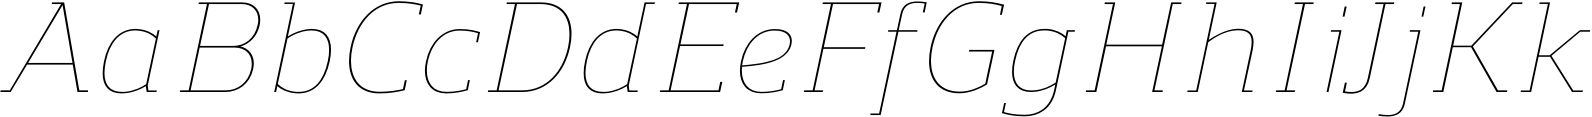 Regan Slab UltraLight Italic